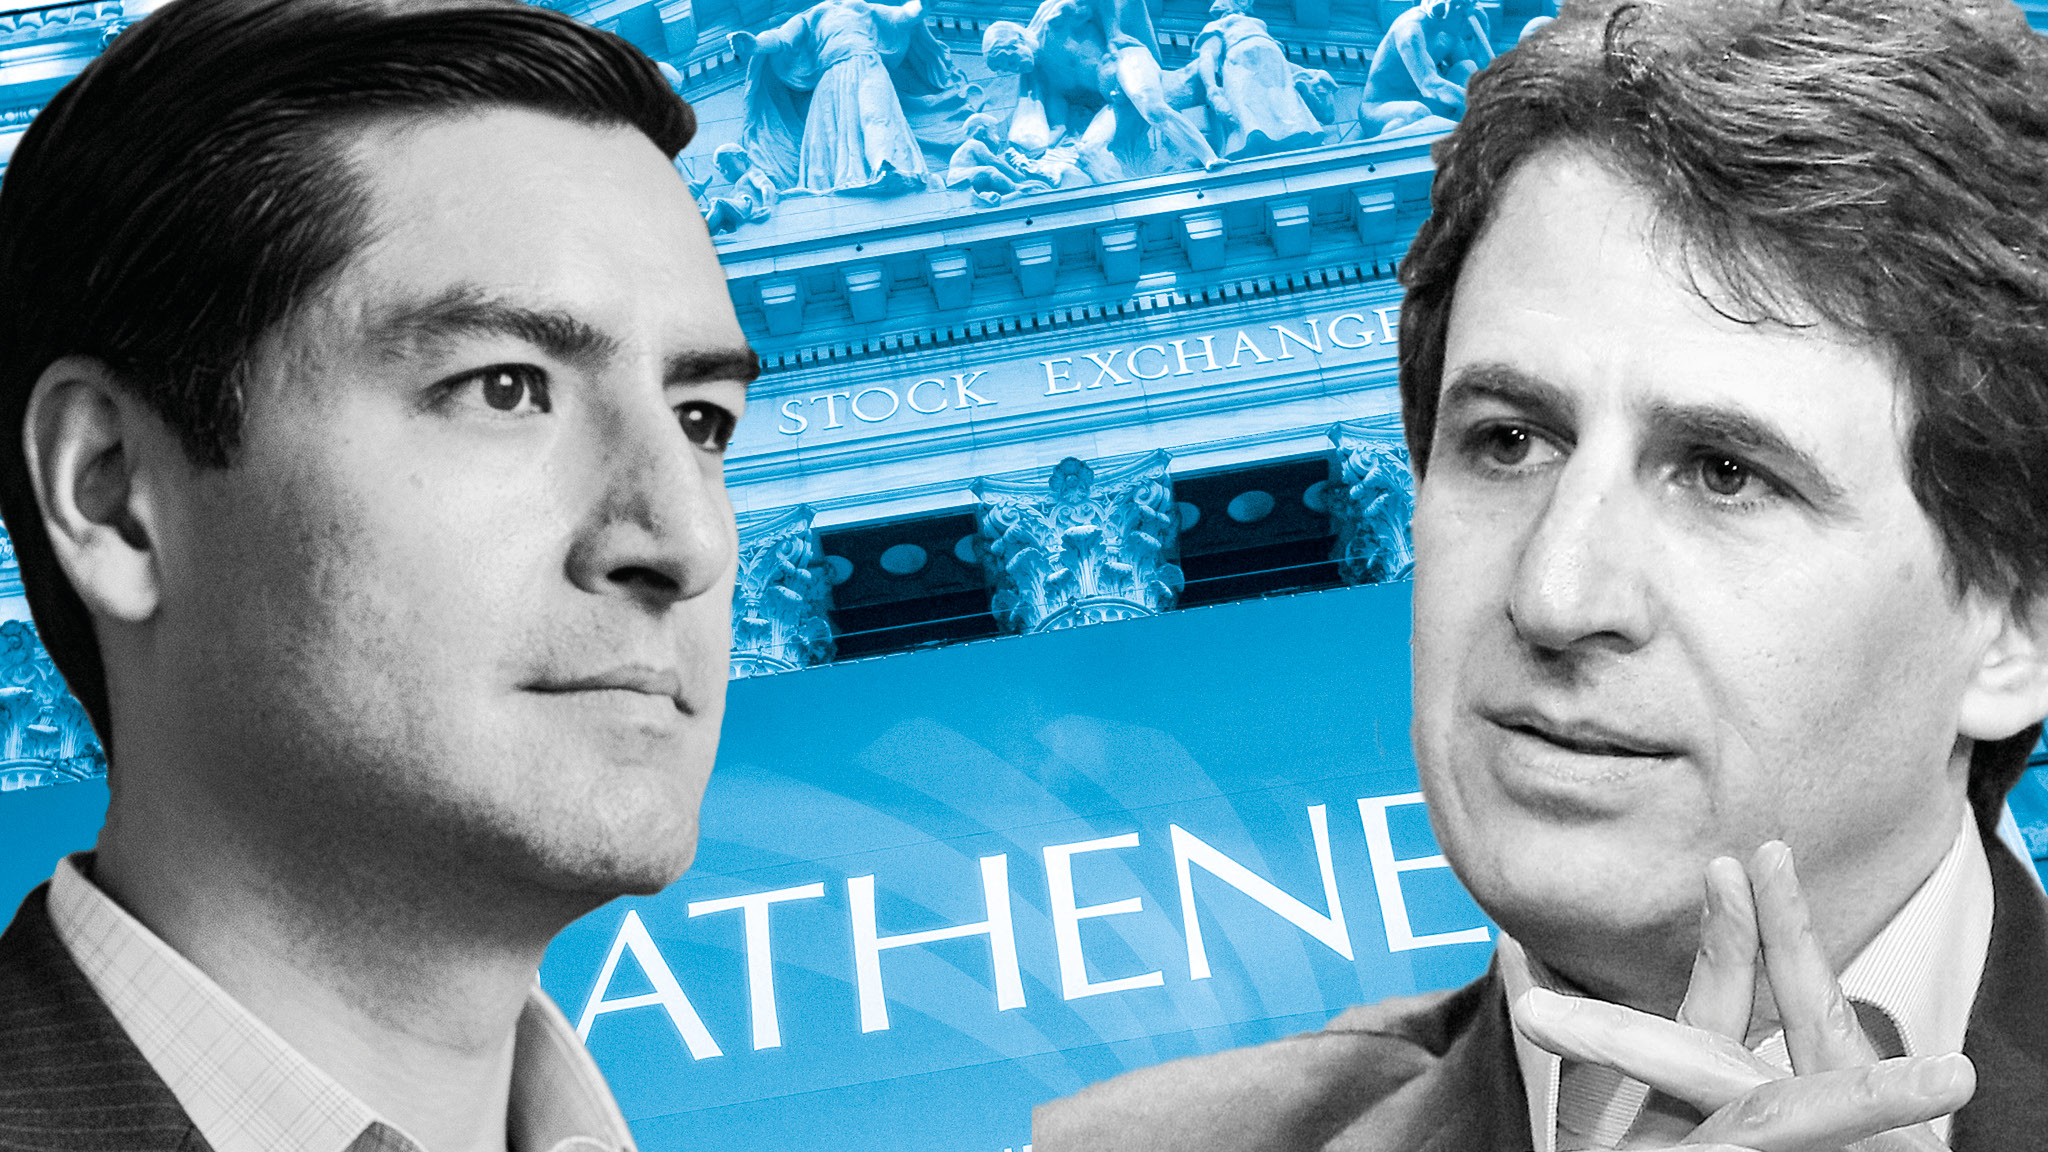 Private equity: the generational feud that rocked Apollo